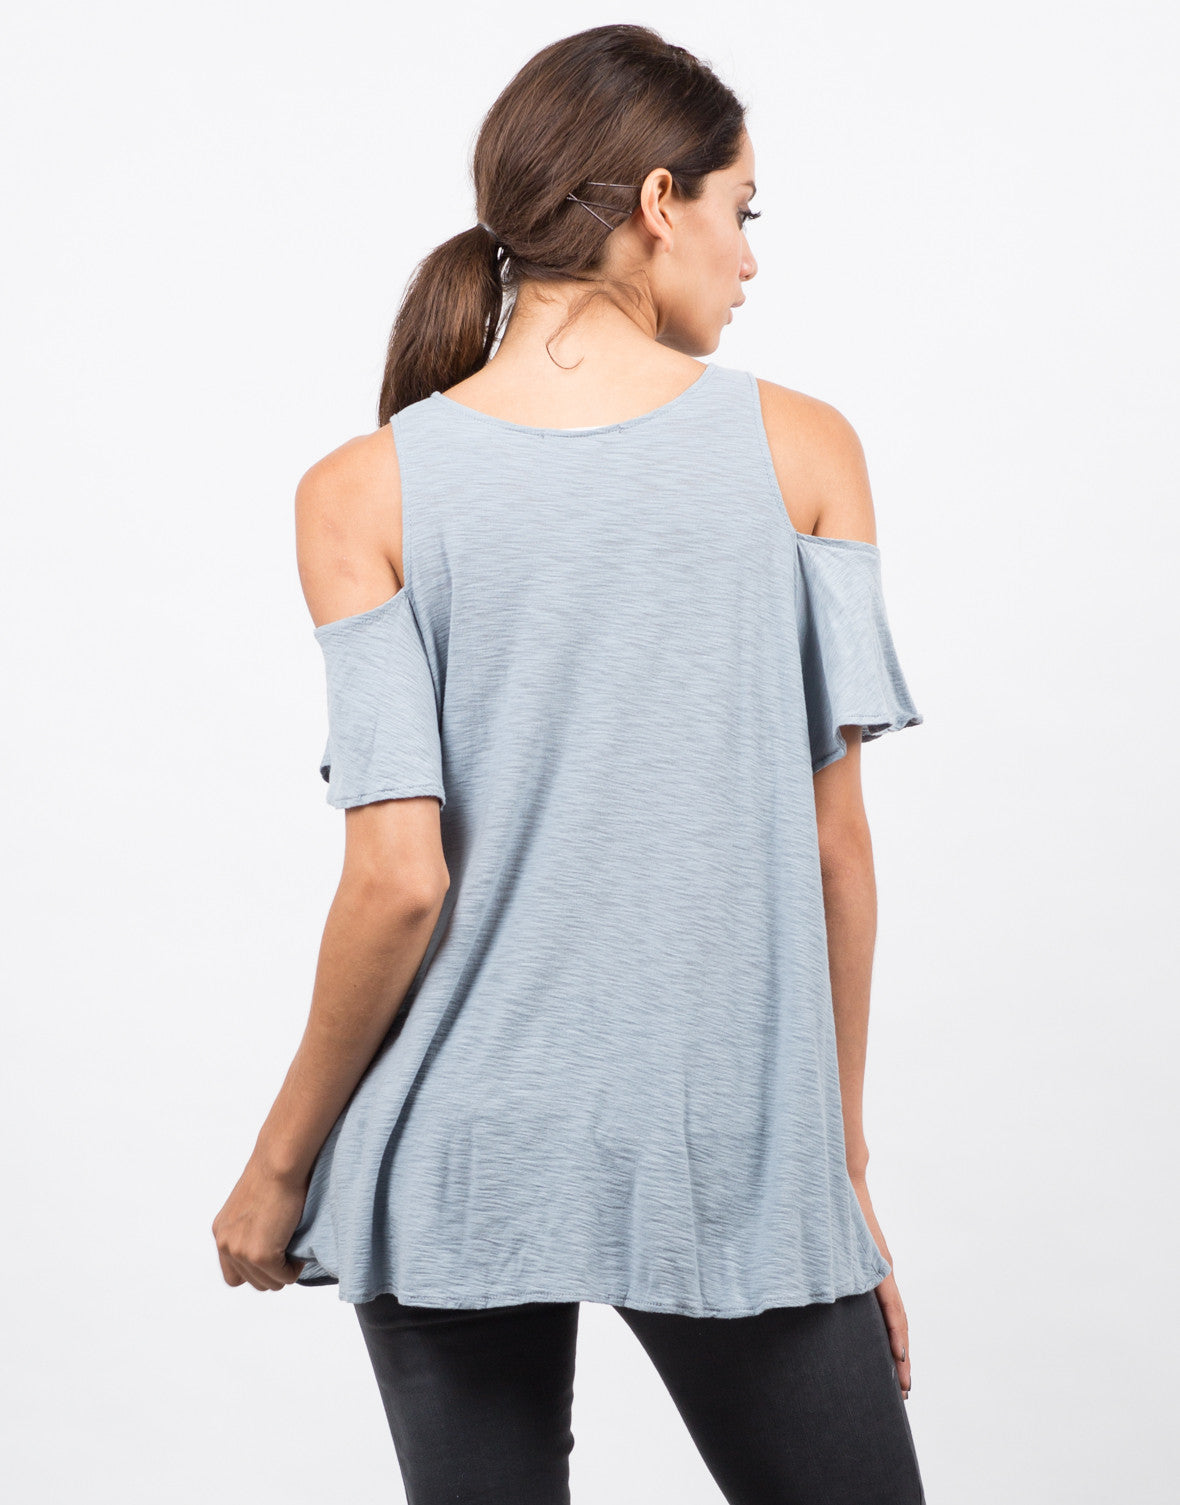 Back View of Cold Shoulder Soft Flowy Top